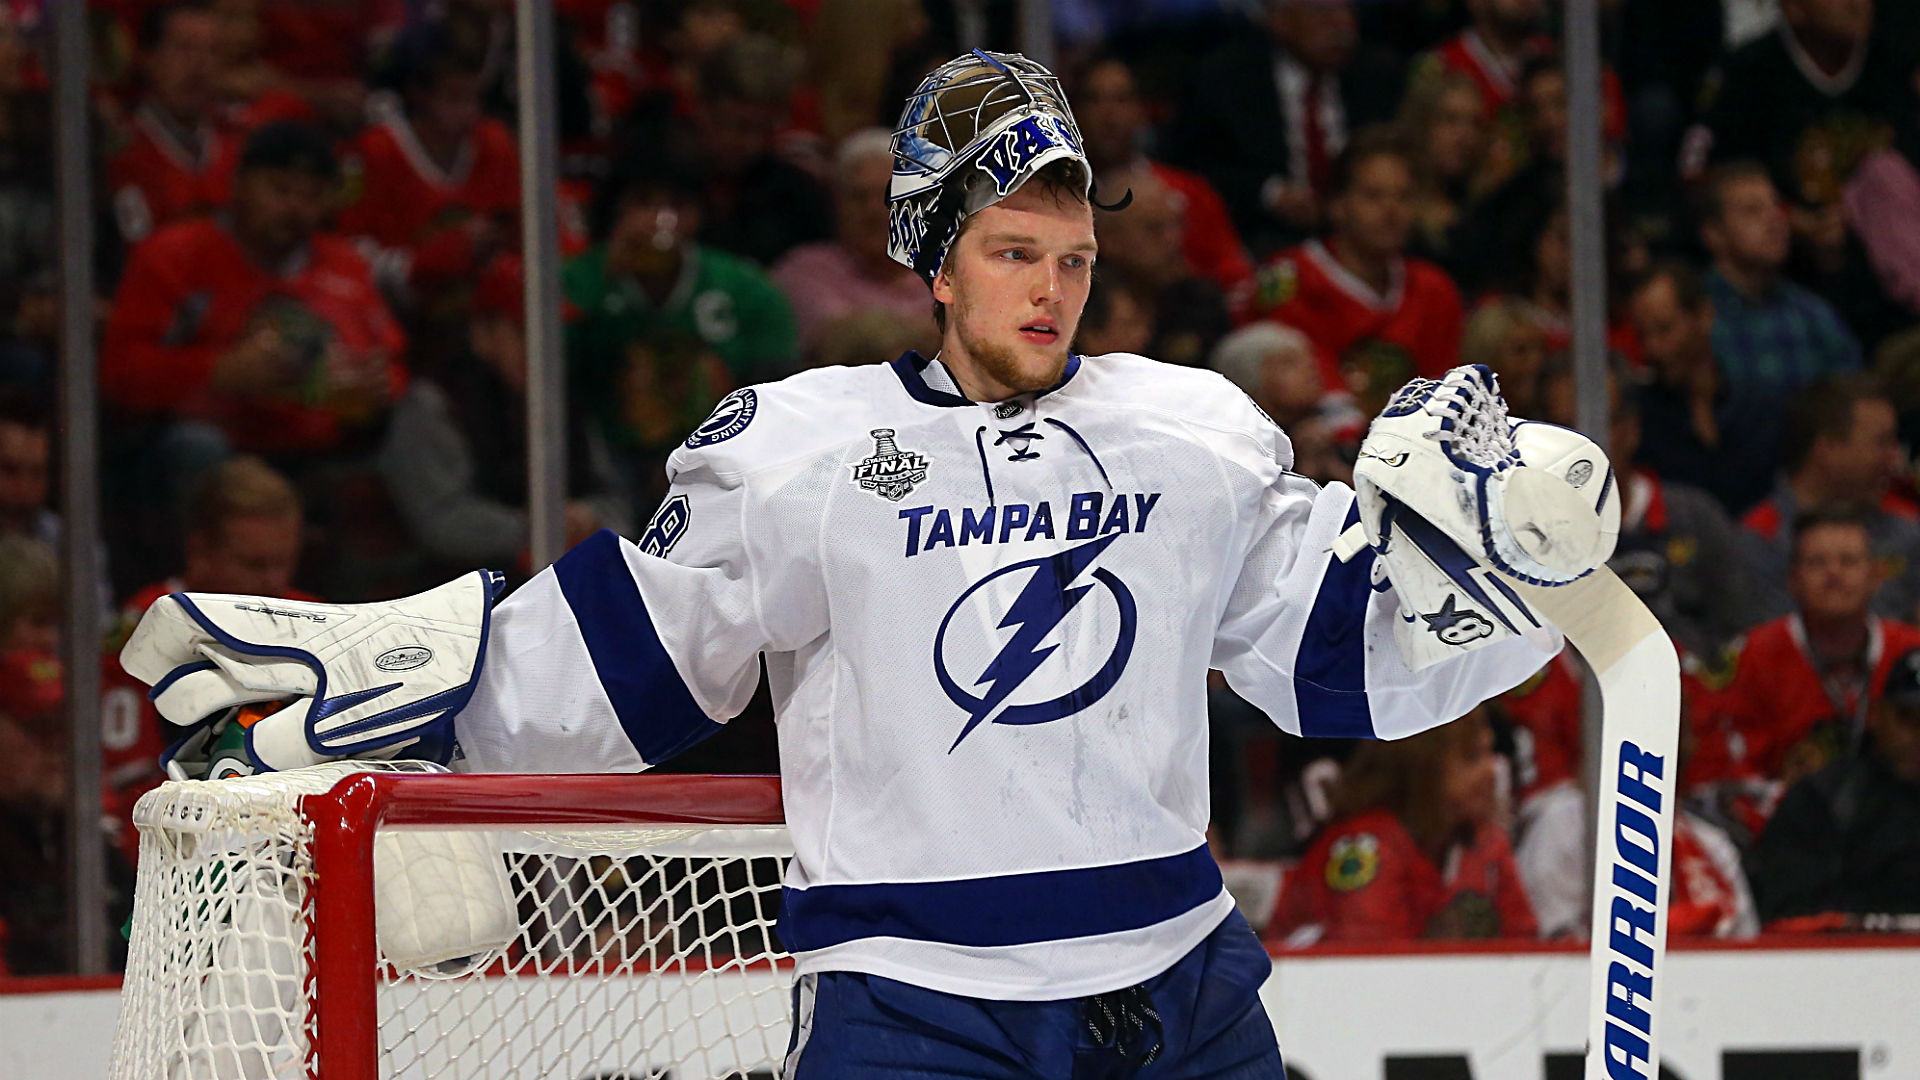 Blackhawks vs. Lightning Game 5 odds and betting analysis — Vegas books disagree on favorite